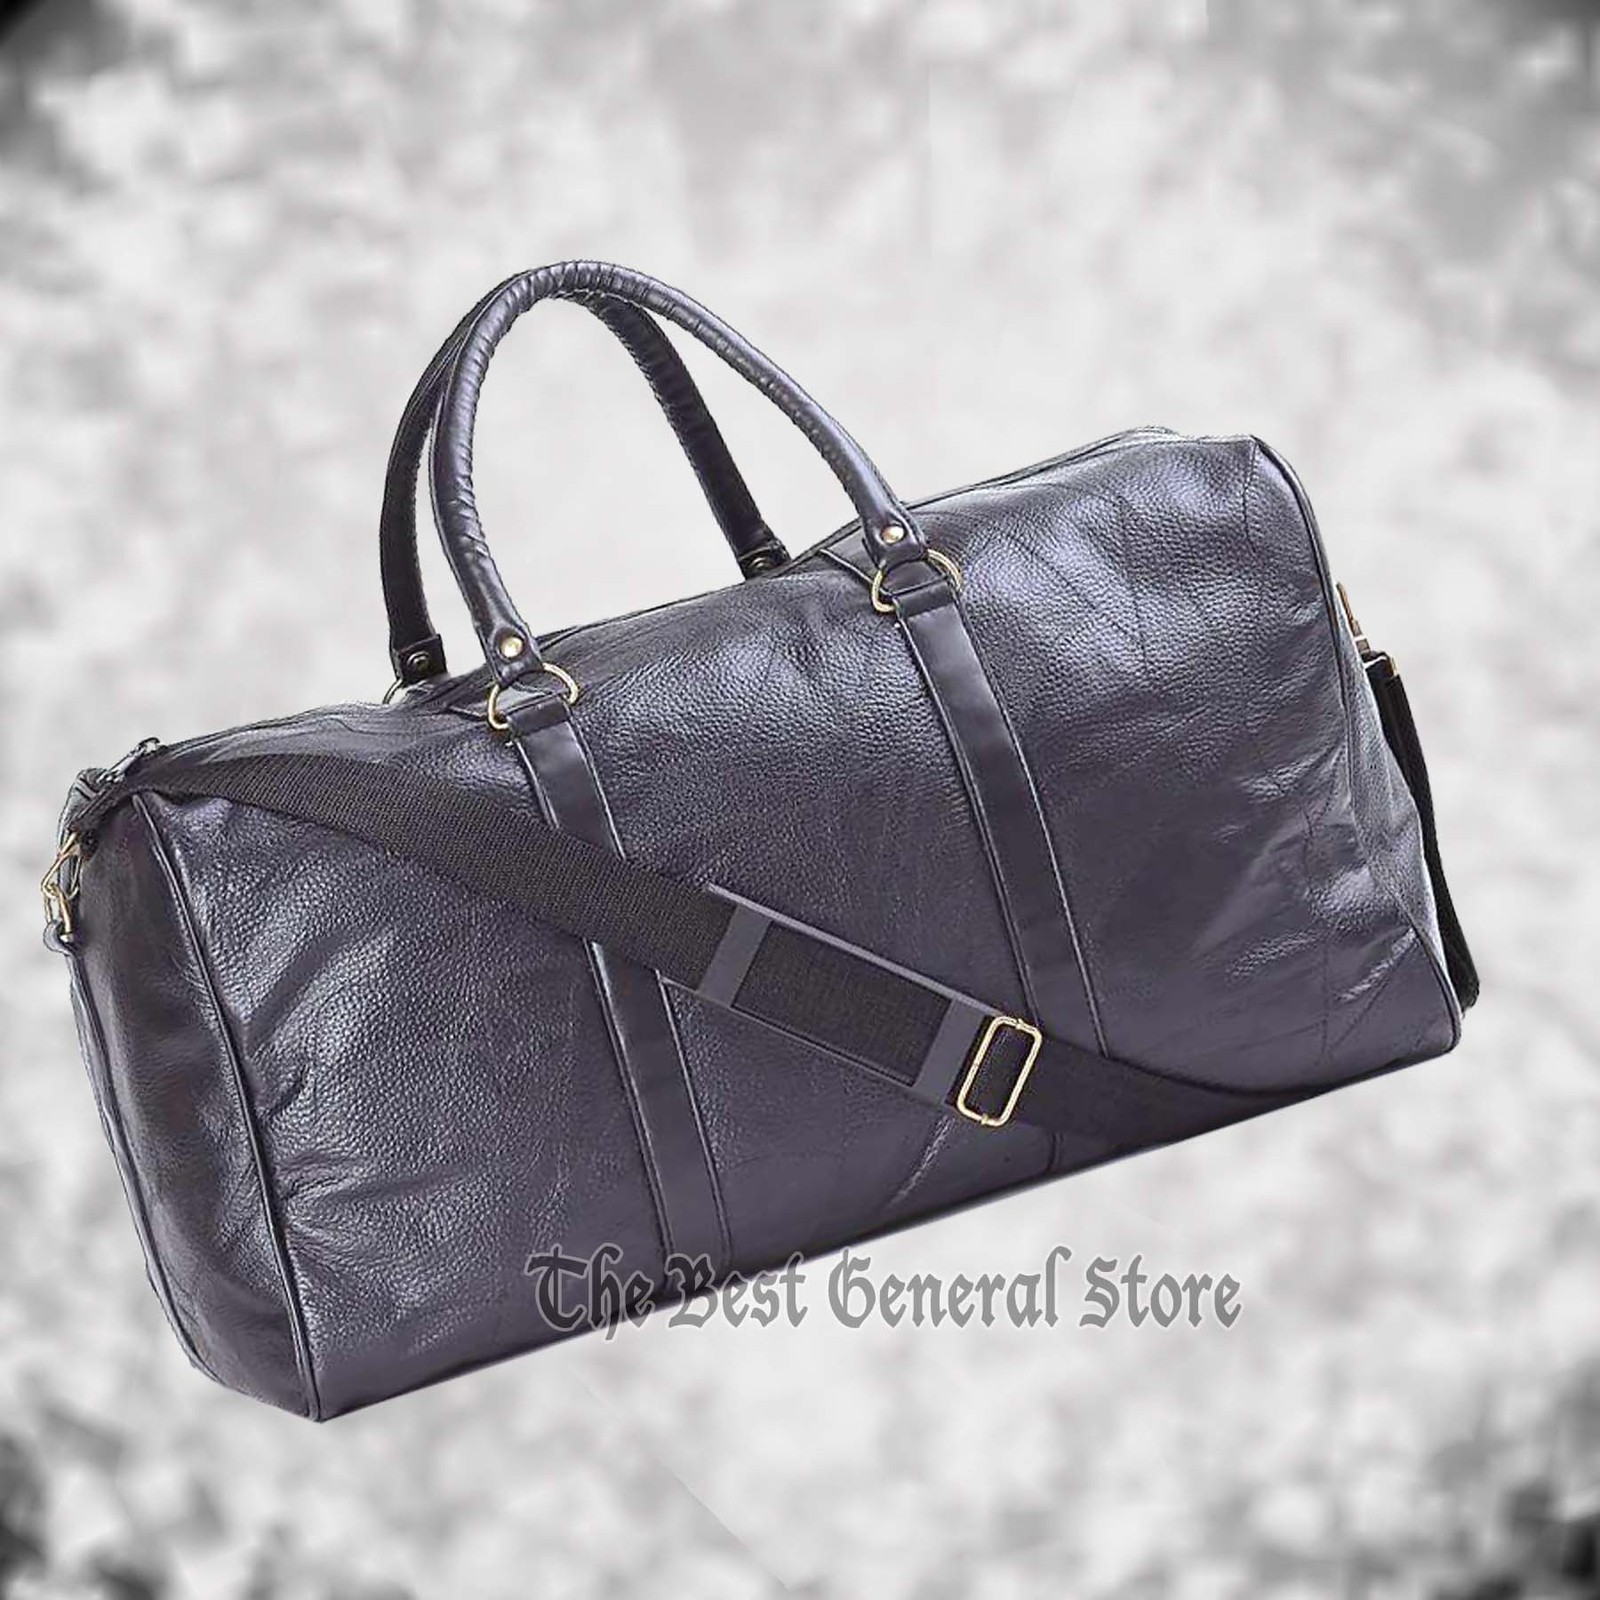 Black leather tote lulduf21 1800